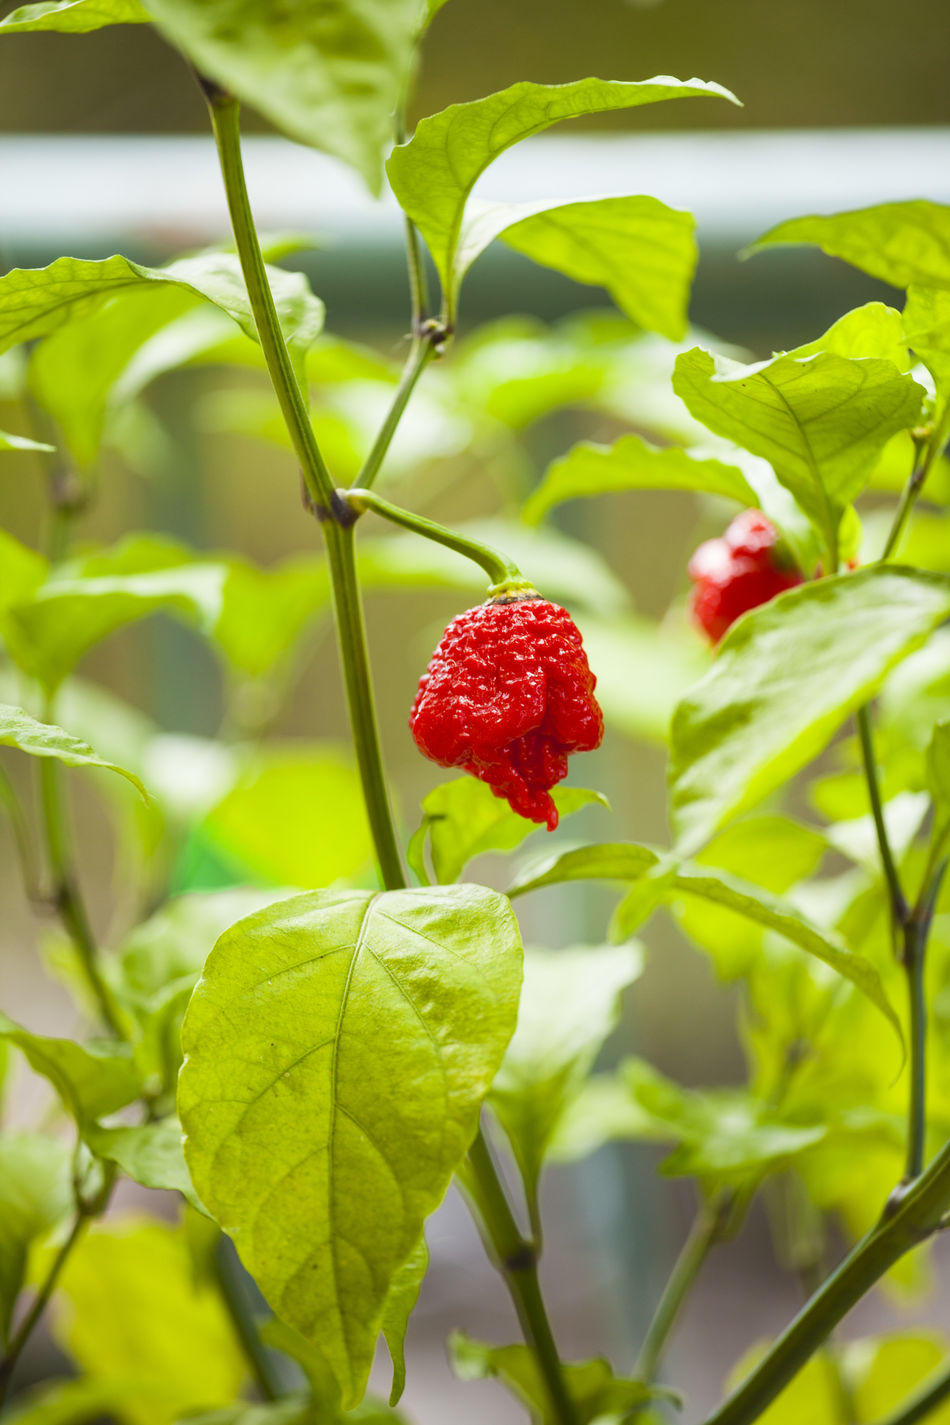 Agriculture Beauty In Nature Carolina Reaper Close-up Day Freshness Fruit Green Color Growth Healthy Eating Hot Pepper Hot Peppers Plants Leaf Nature No People Outdoors Plant Red Tree